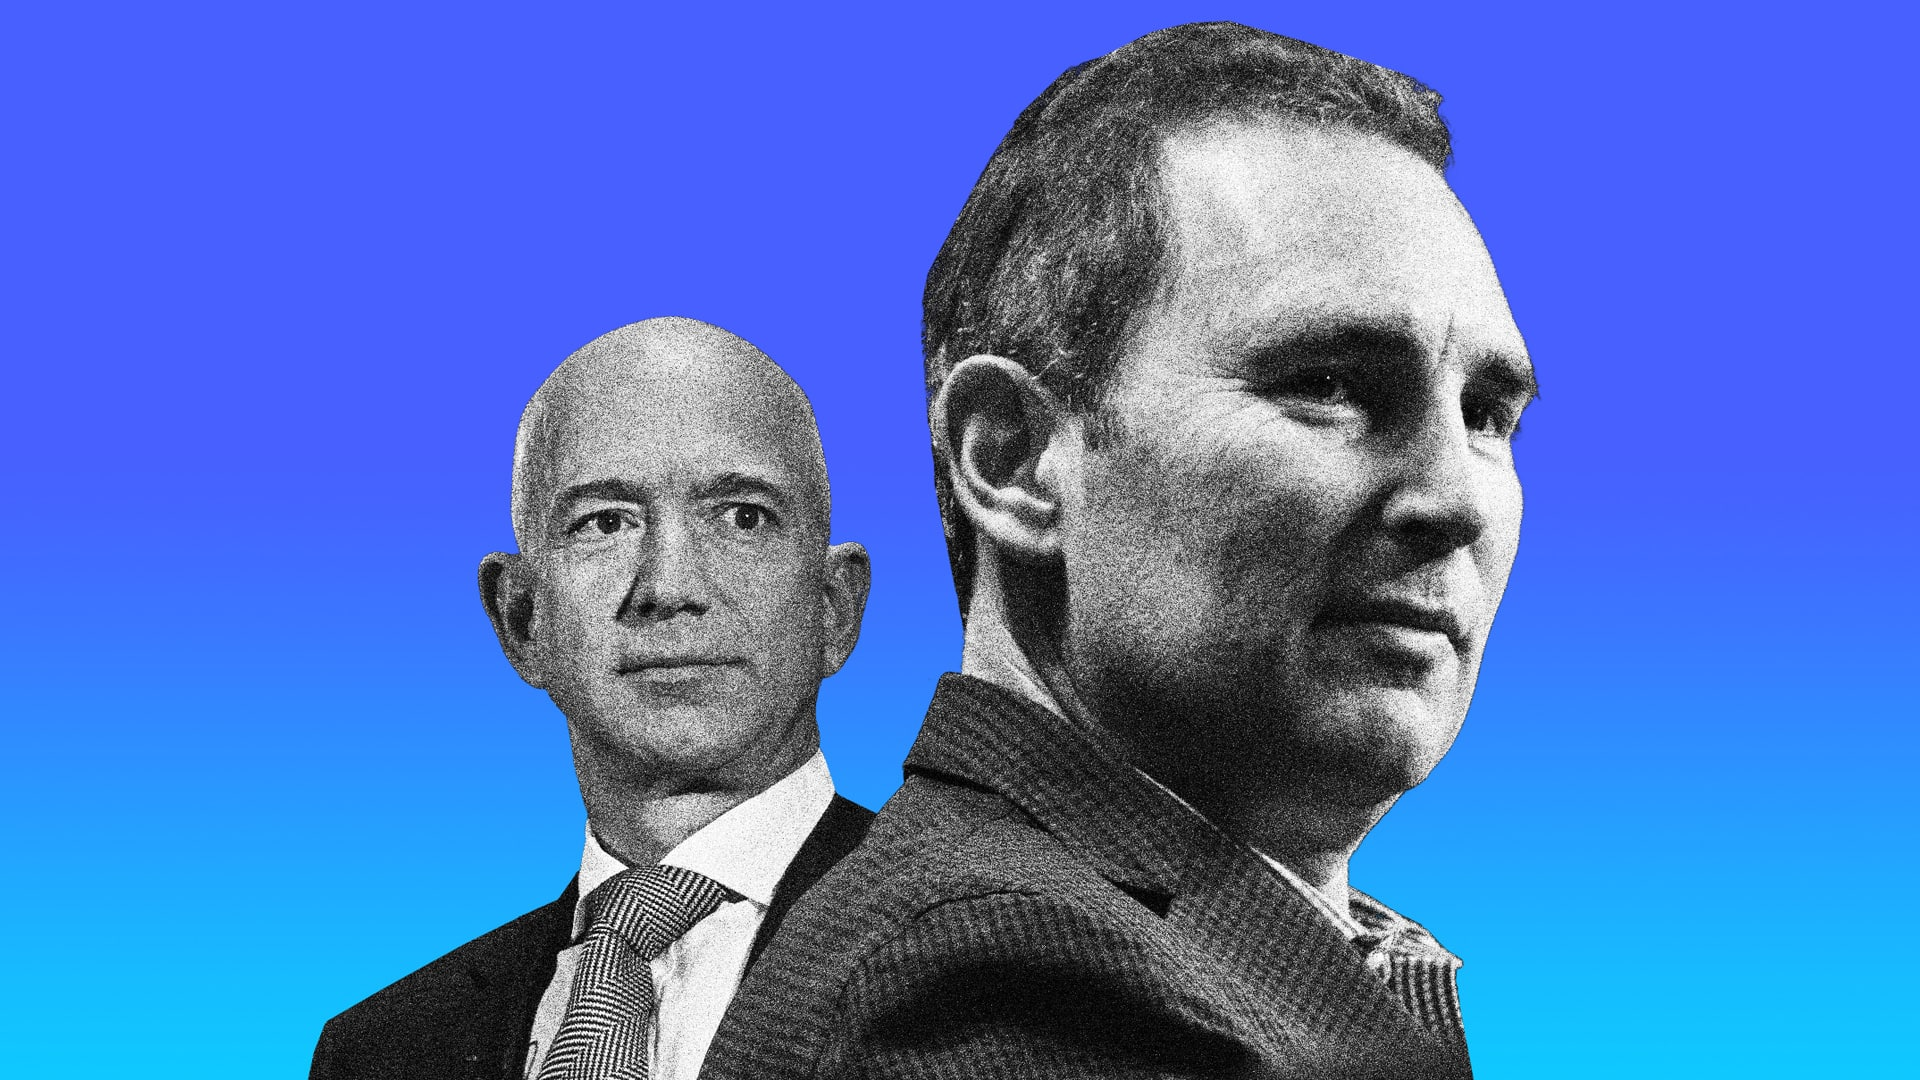 New Era for Amazon as Bezos hands over CEO role to Andy Jassy